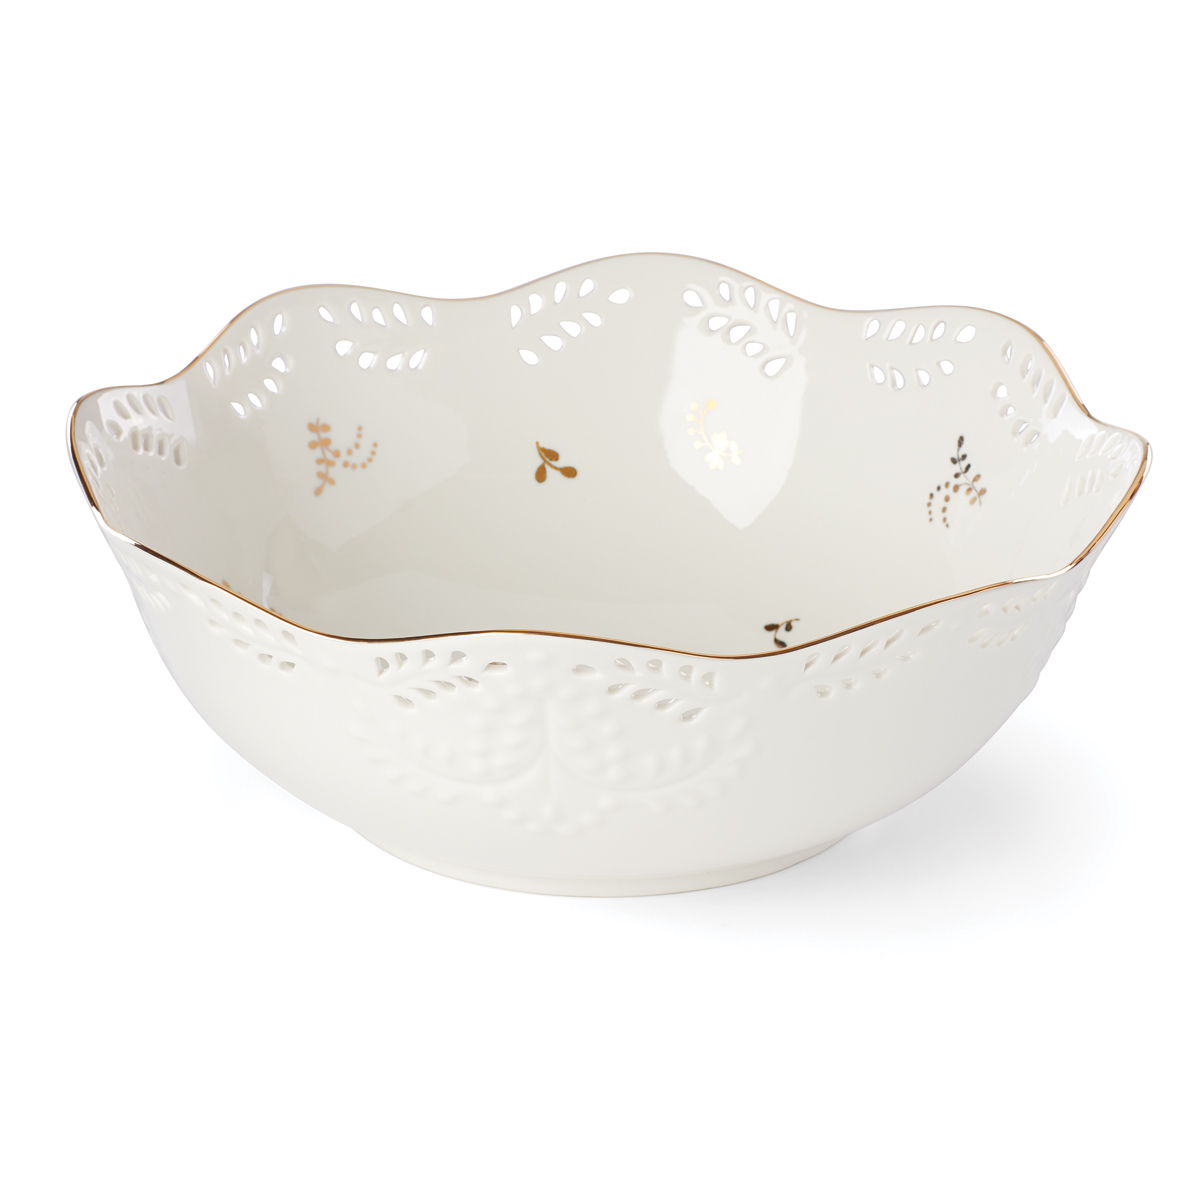 Lenox Opal Innocence Flourish Dinnerware Large Serving Bowl